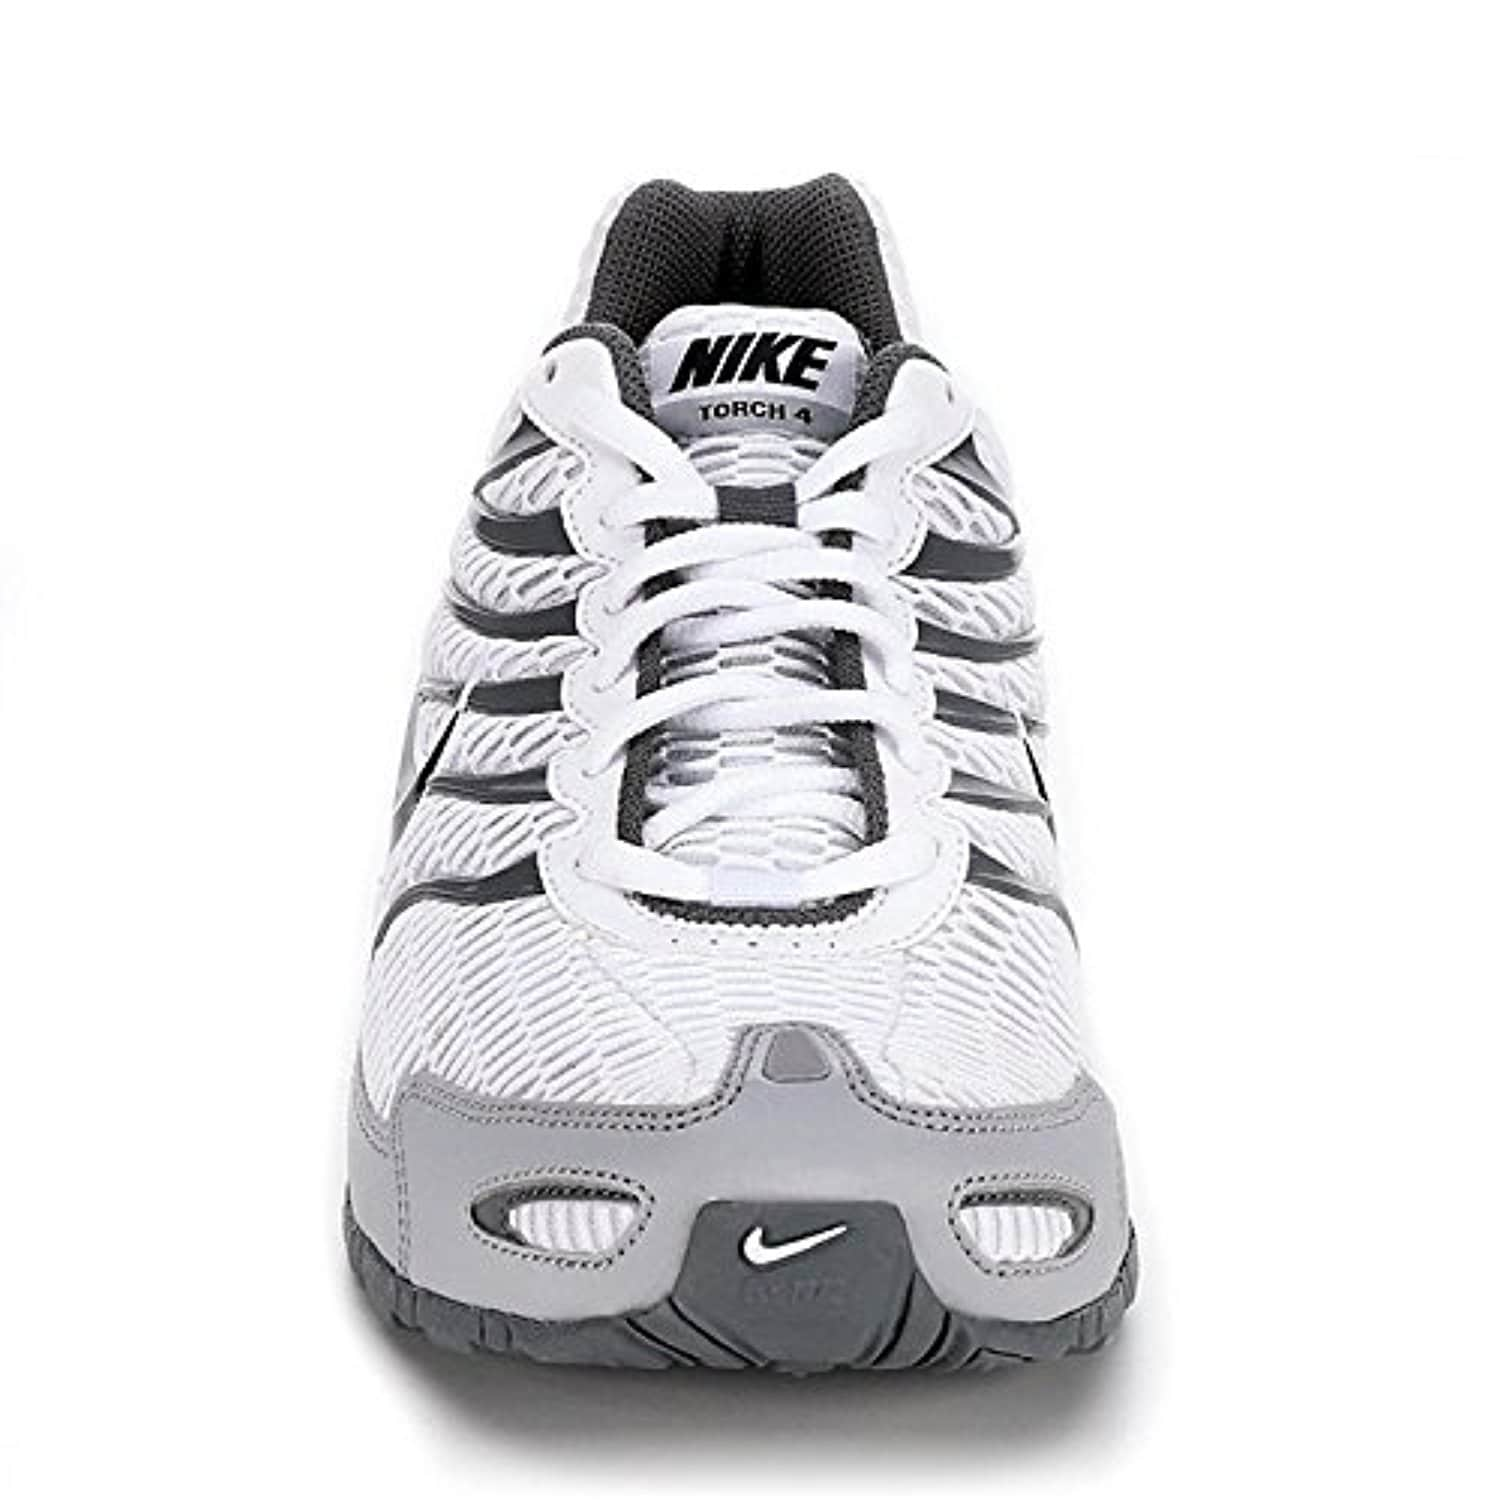 c9916e288e7 Shop Nike Mens AIR MAX TORCH 4